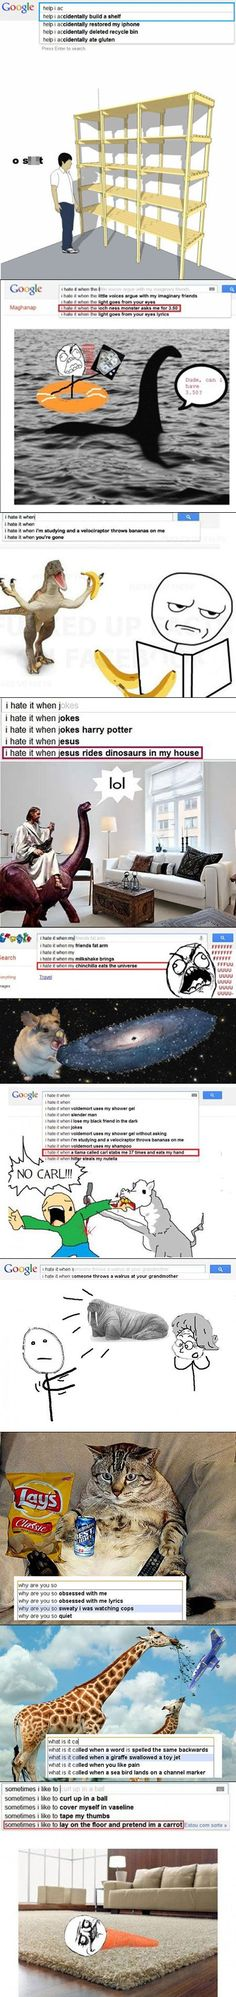 10 Really Bizarre Google Search Suggestions Get Illustrated [Pic] | Geeks are Sexy Technology News